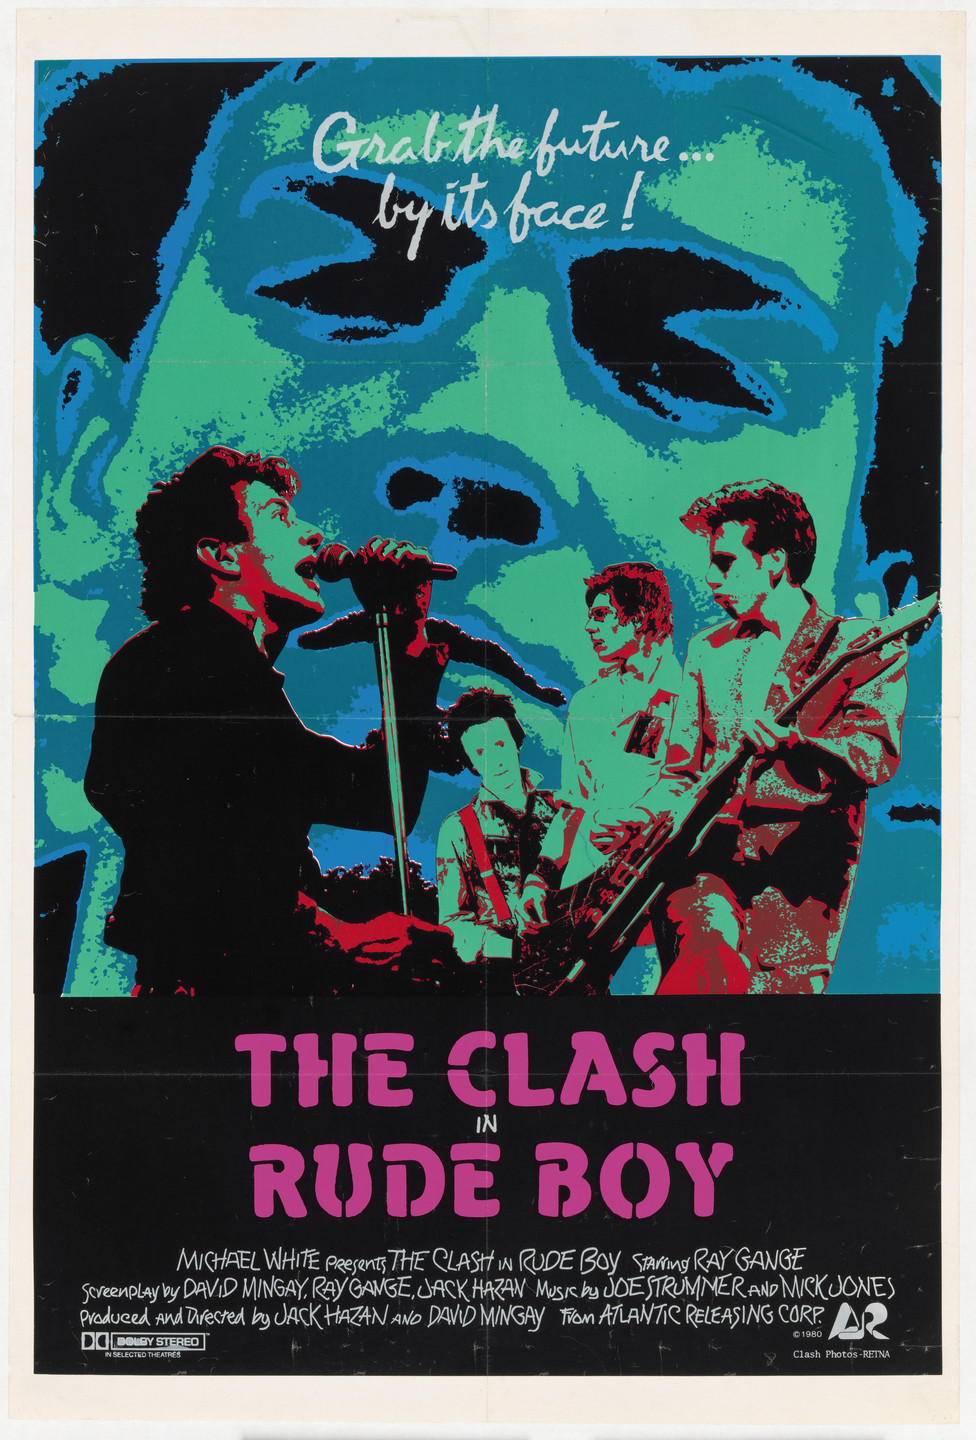 Unknown Designer. The Clash, Rude Boy, with Invitations to the New York Premiere and After-Party. 1981